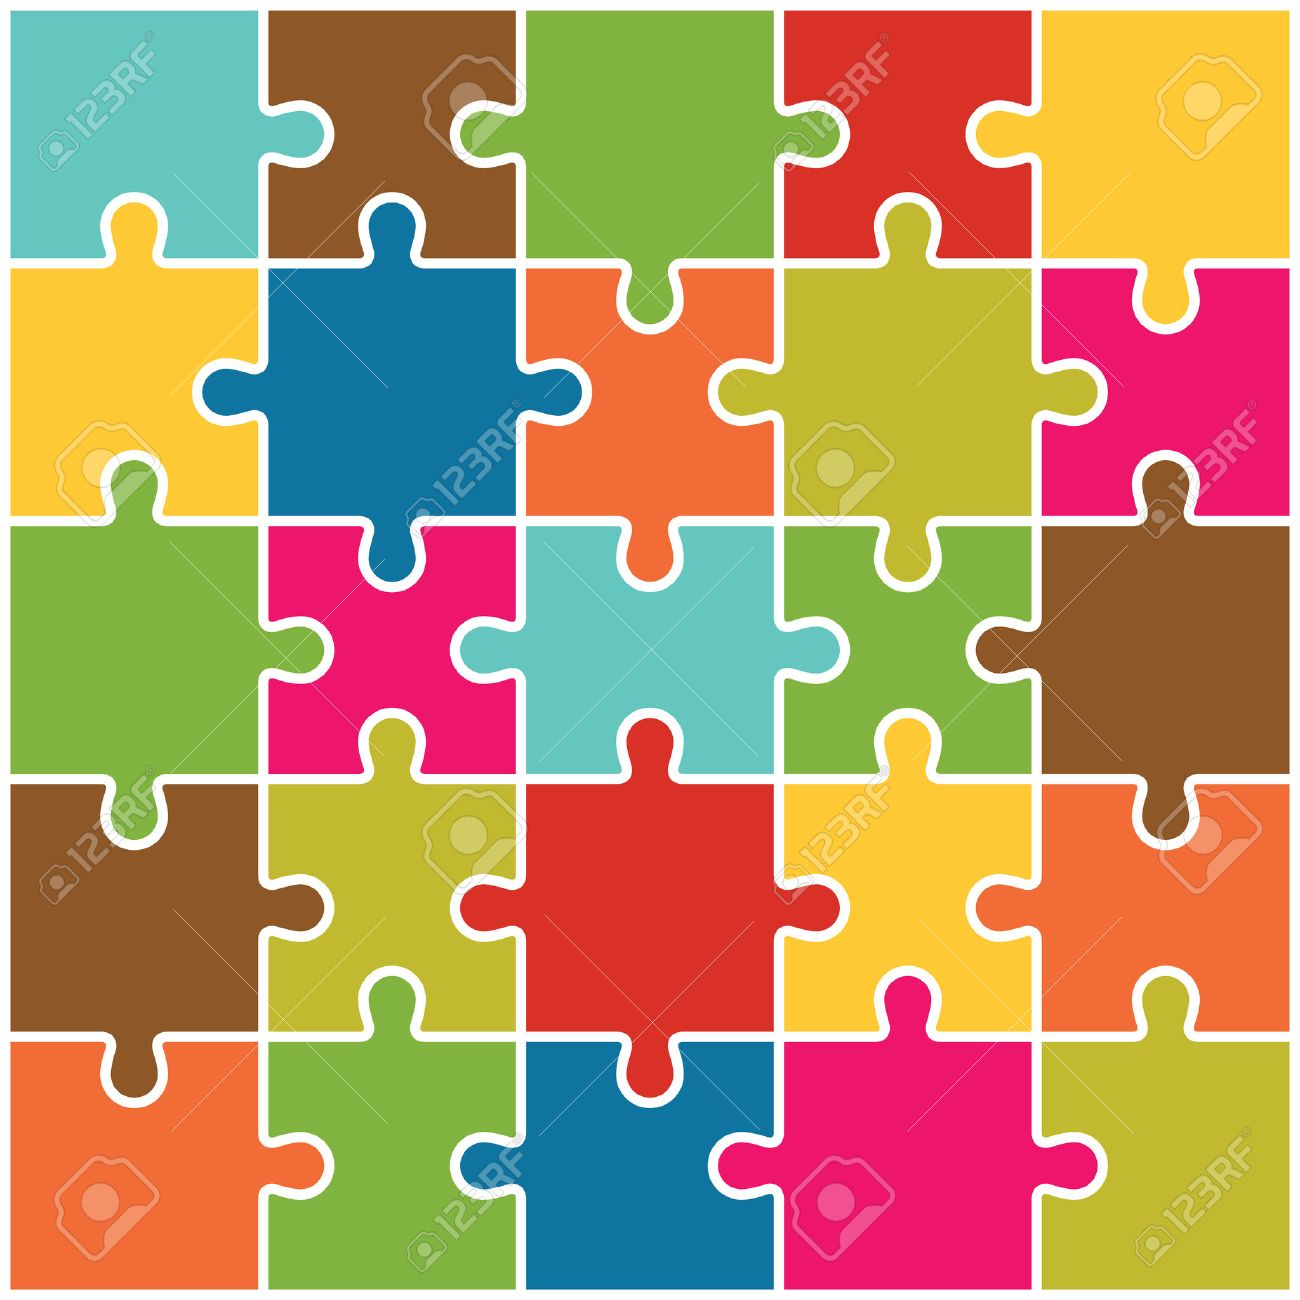 Jigsaw Puzzle Pieces Background Vector Royalty Free Cliparts ...